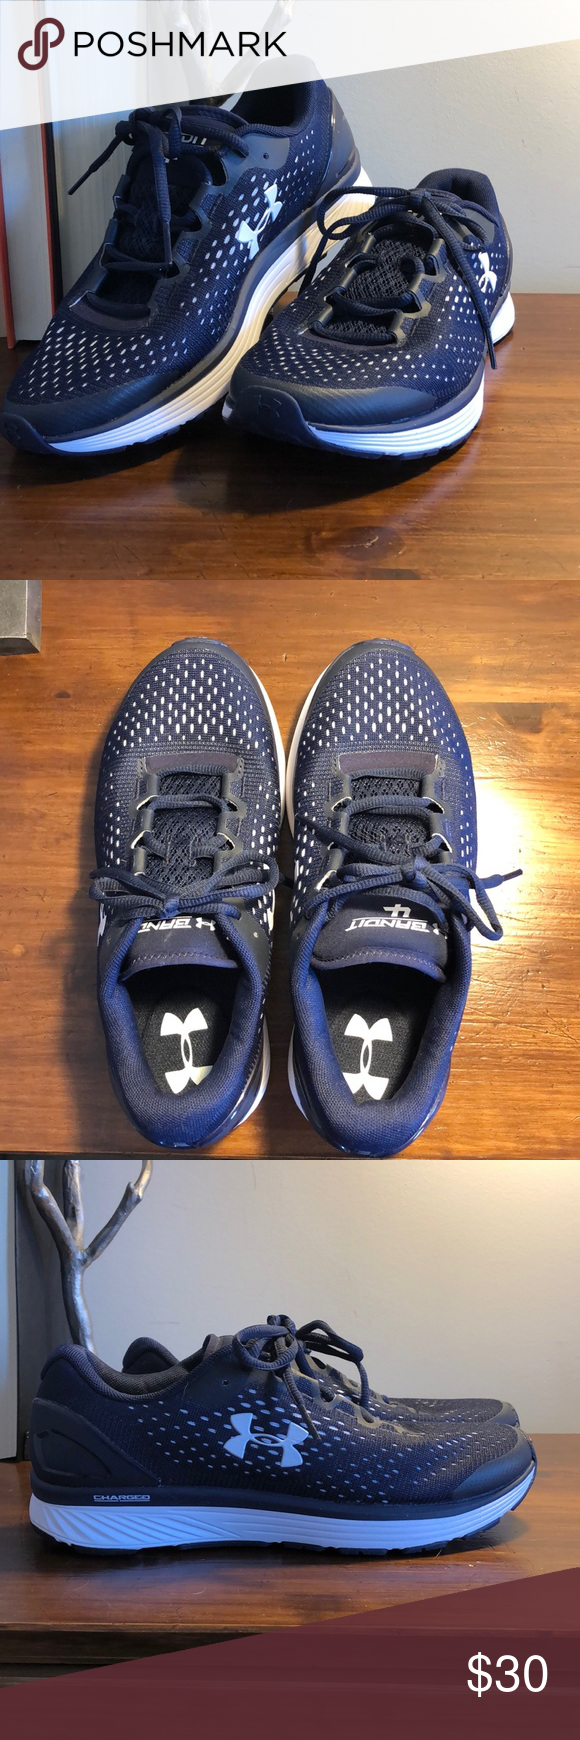 Navy Blue Under Armour Sneakers Brand New Ua Bandit 4 Sneakers Never Worn And In Great Condition Navy Blue With Sneakers Under Armour Shoes Sneaker Brands